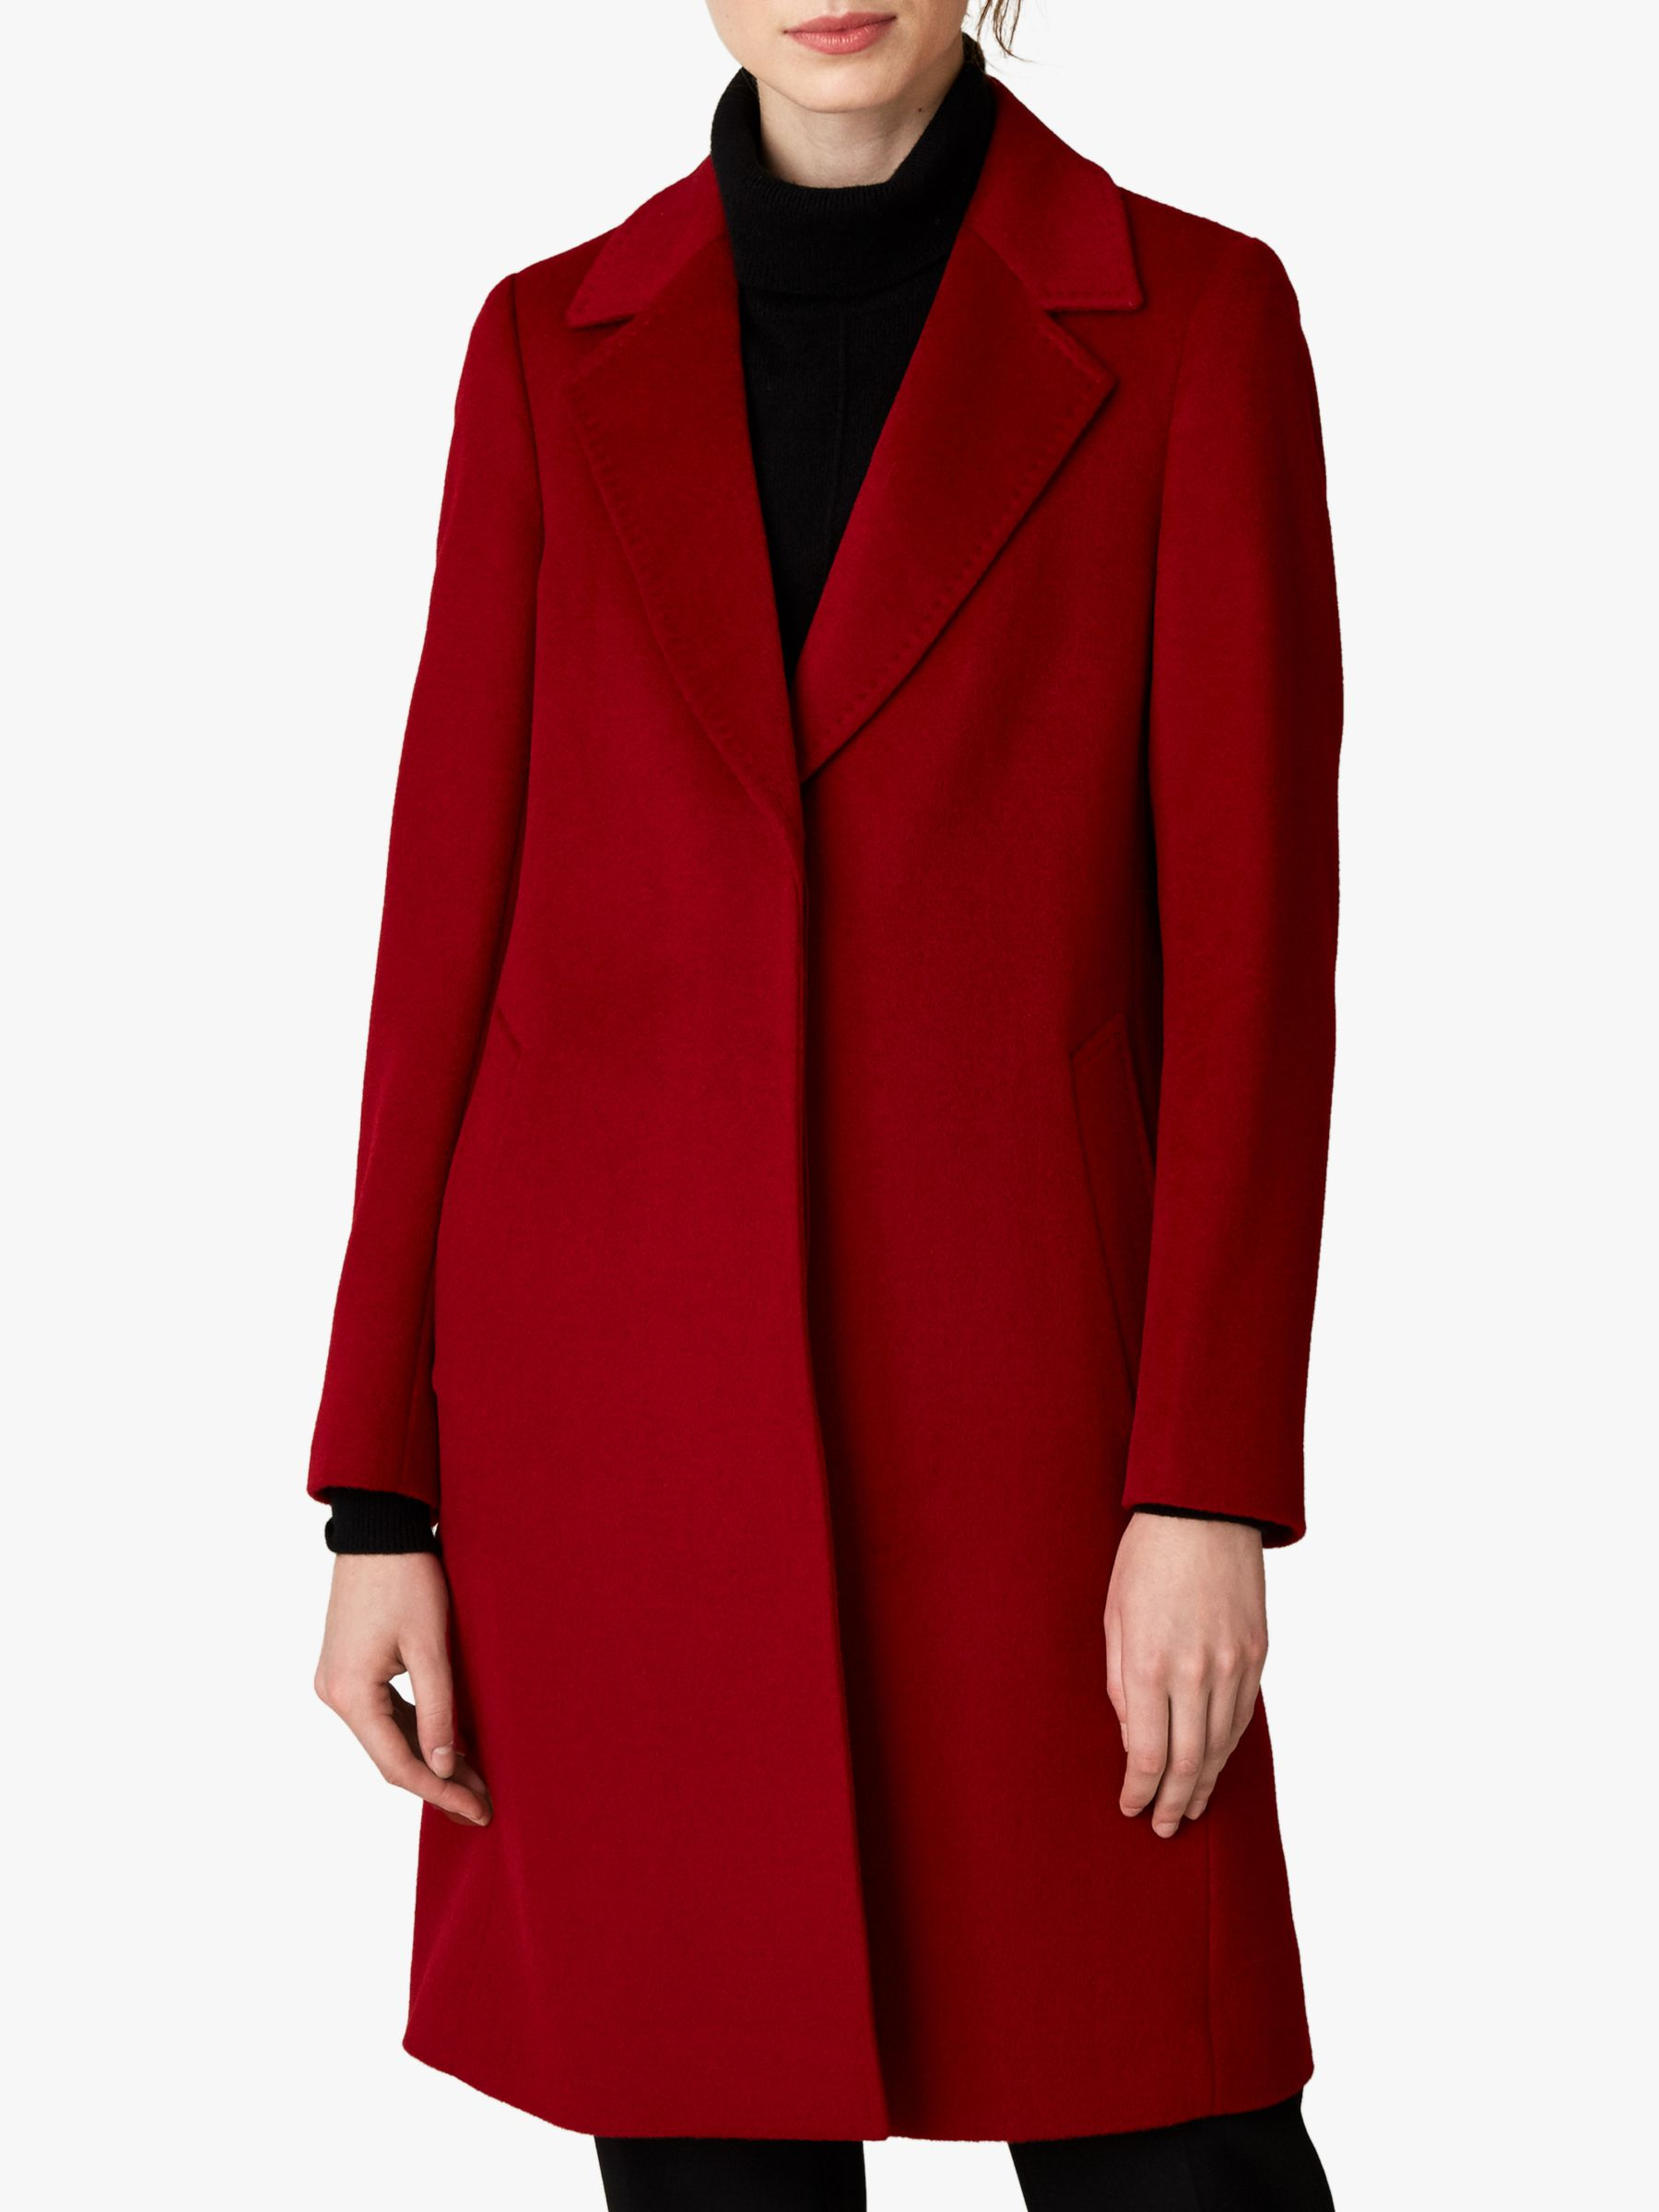 Jaeger Jaeger Wool Single Breasted A-Line Coat